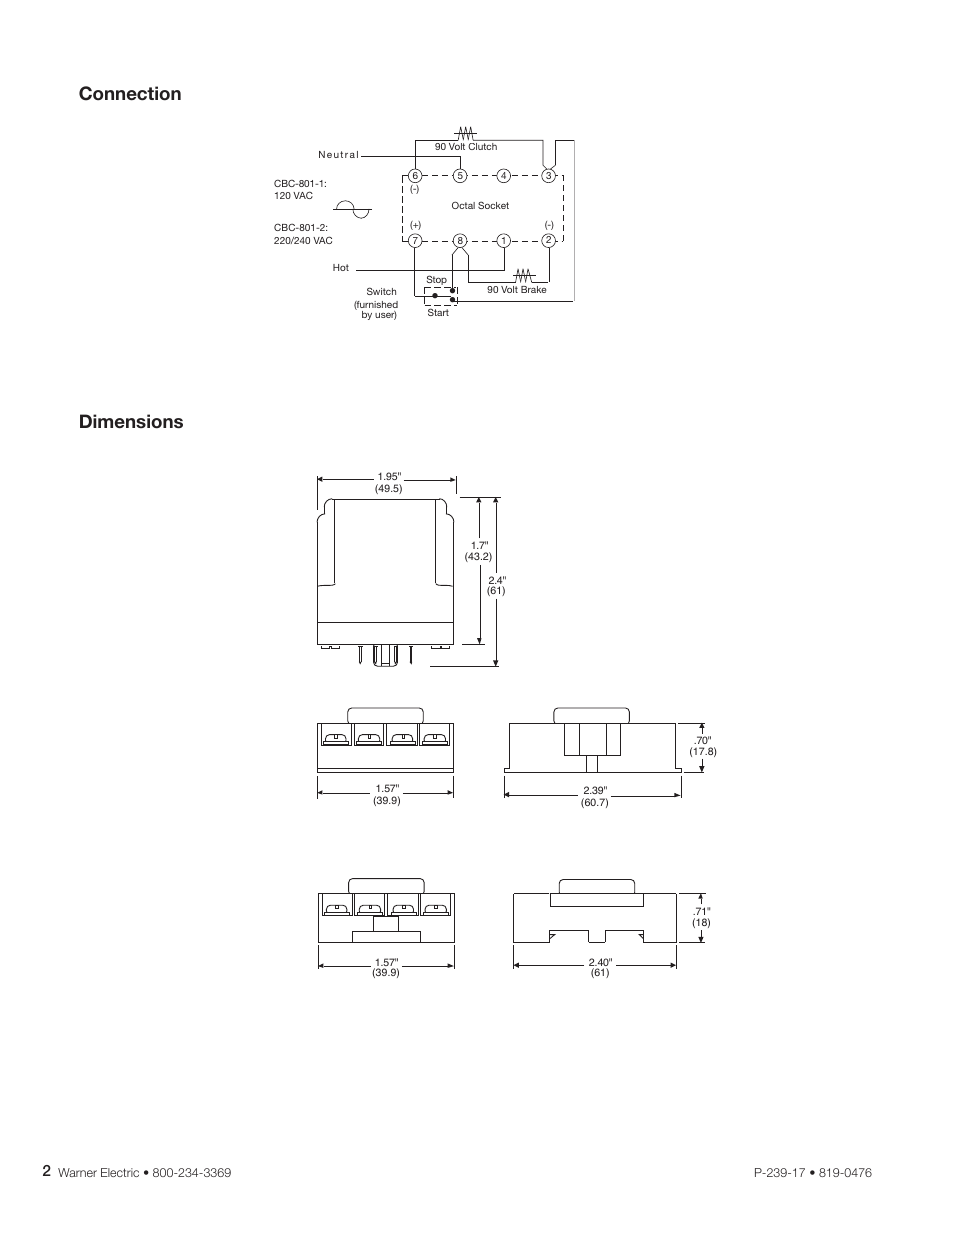 medium resolution of connection dimensions warner electric cbc 801 user manual page 2 4